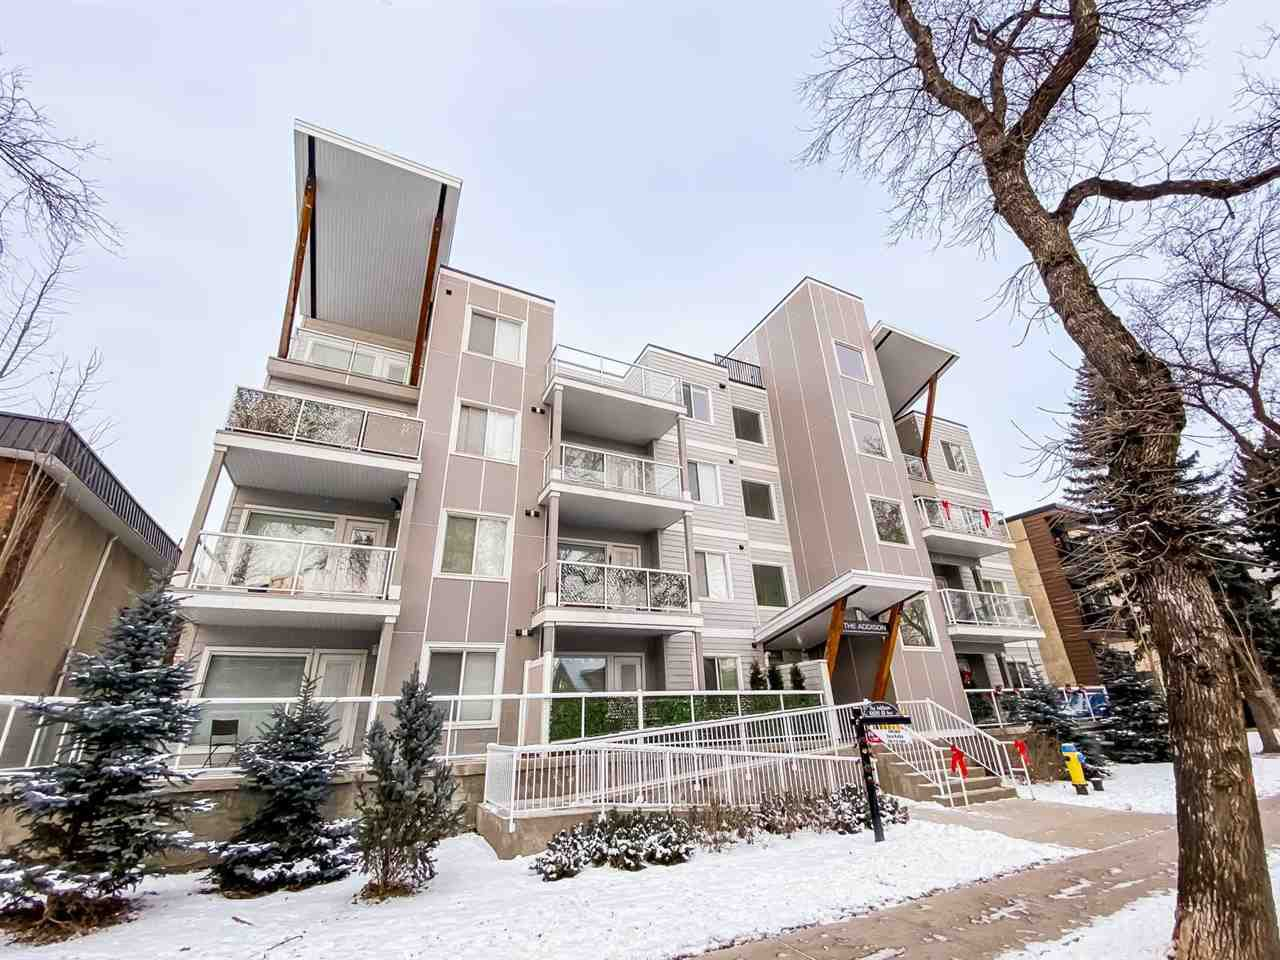 Main Photo: 403 10030 83 Avenue in Edmonton: Zone 15 Condo for sale : MLS®# E4181516